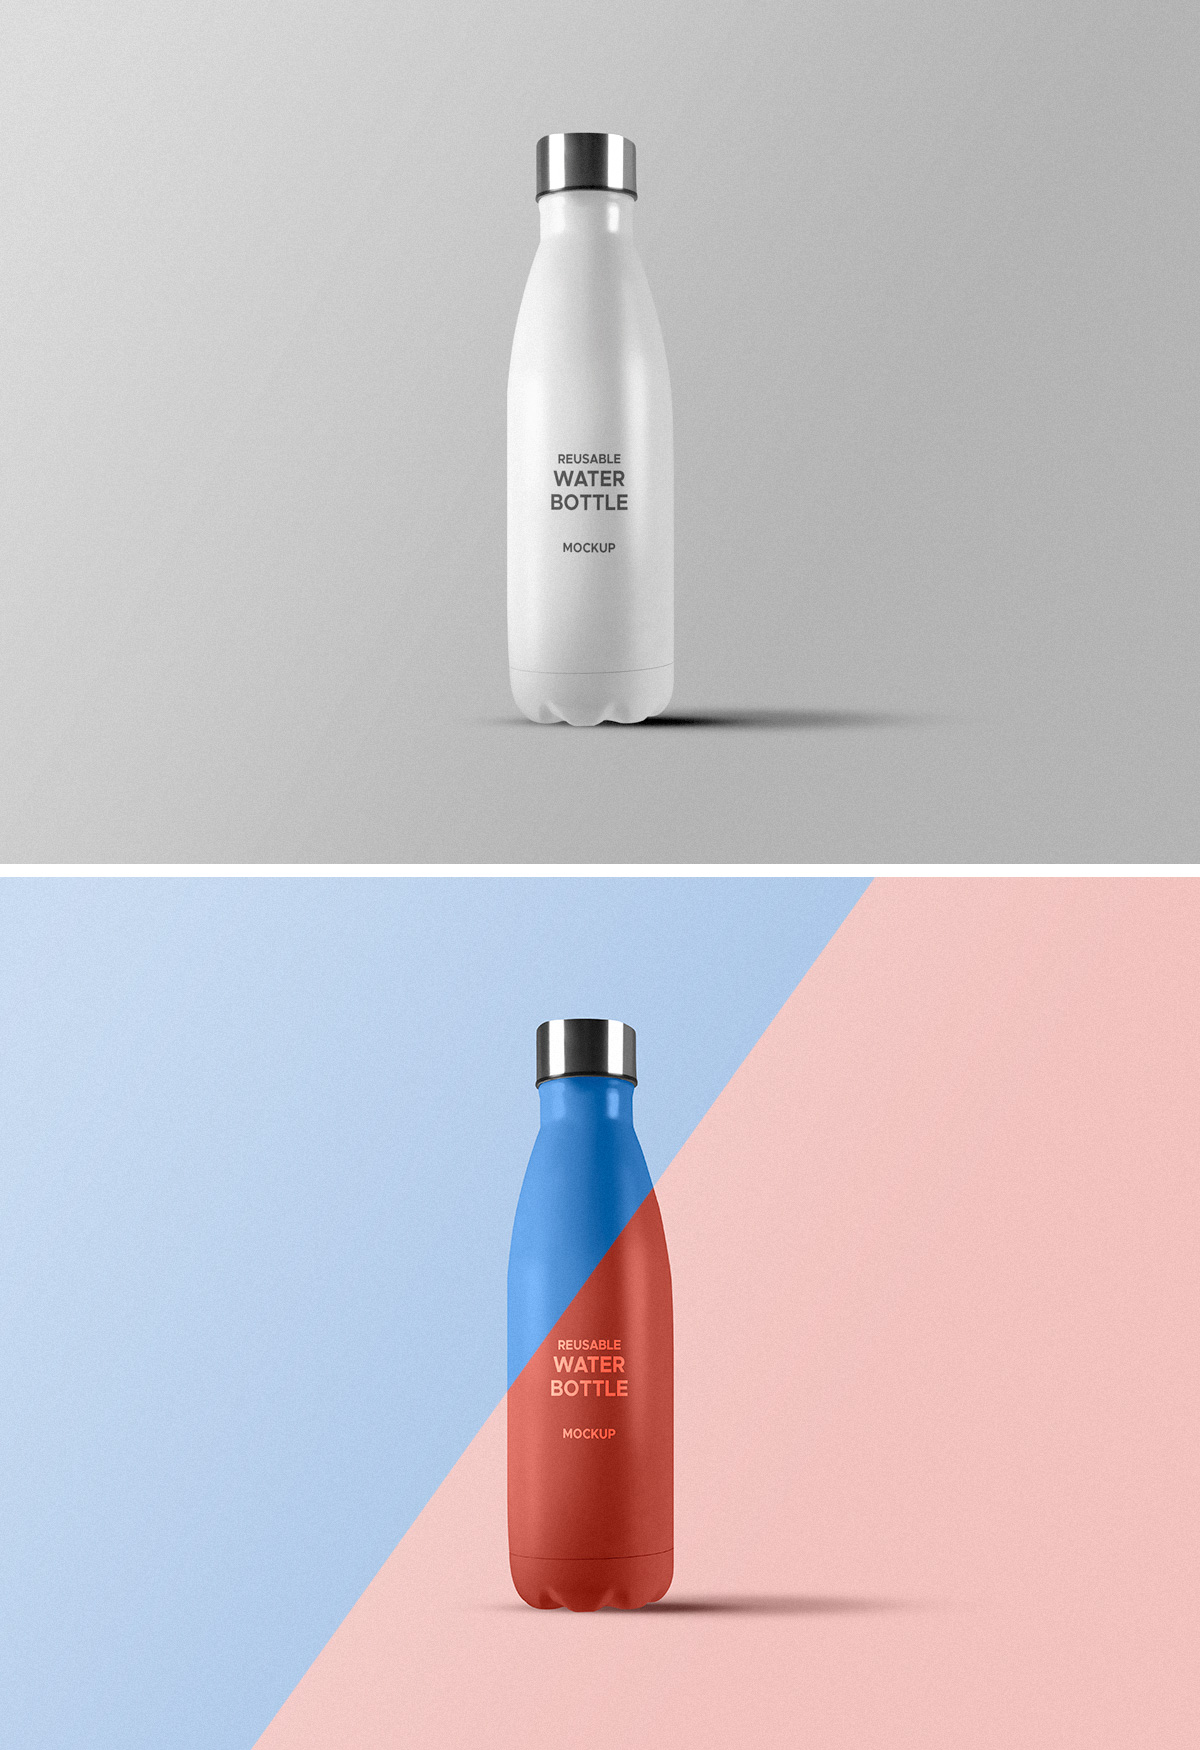 Reusable Water Bottle PSD Mockup